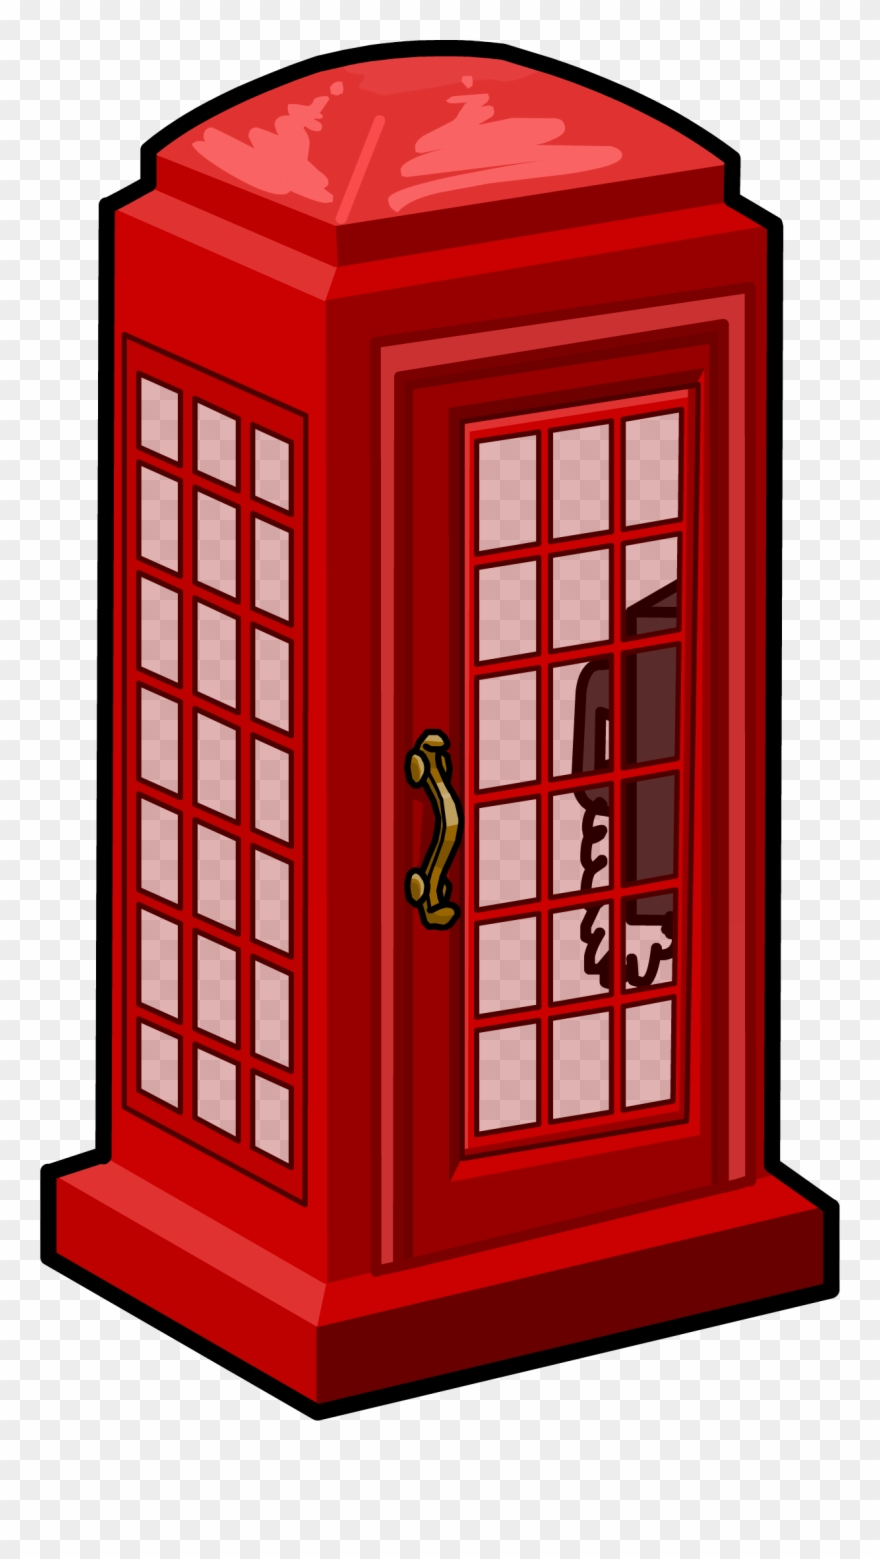 Telephone box clipart png free download Phone Booth Clipart Clip Art - Telephone Box Icon Png ... png free download